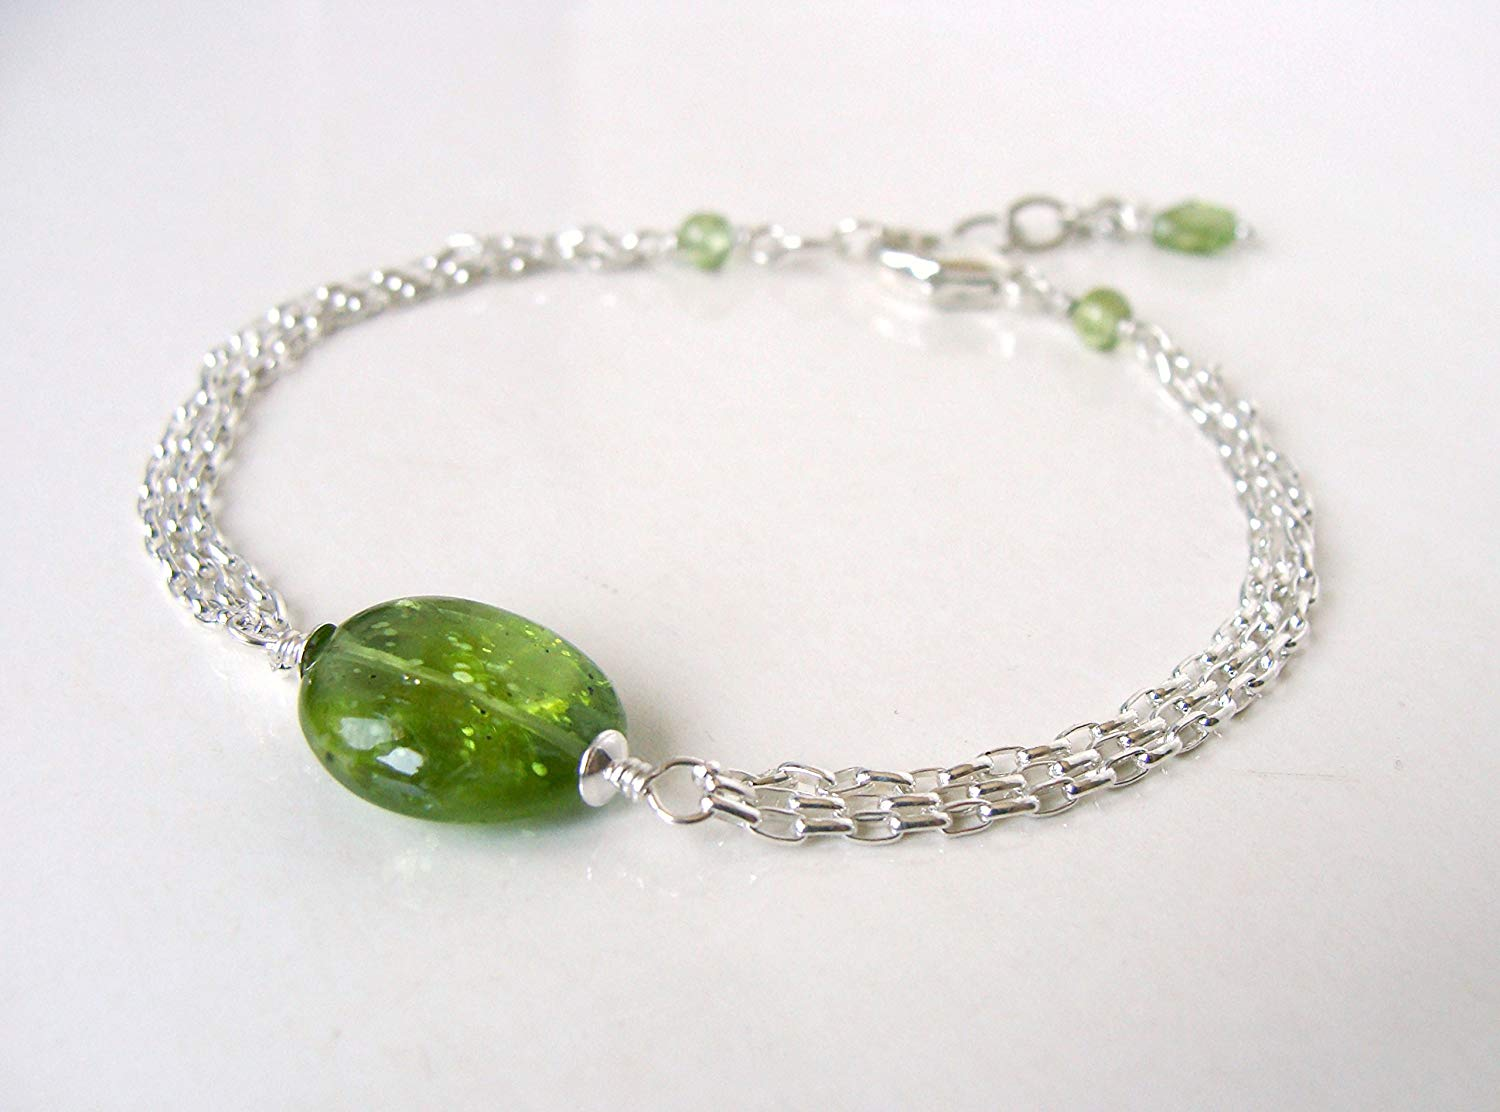 Sterling silver peridot bracelet, multistrand with large genuine peridot nugget, adjustable length, handmade by Let Loose Jewelry, August birthstone